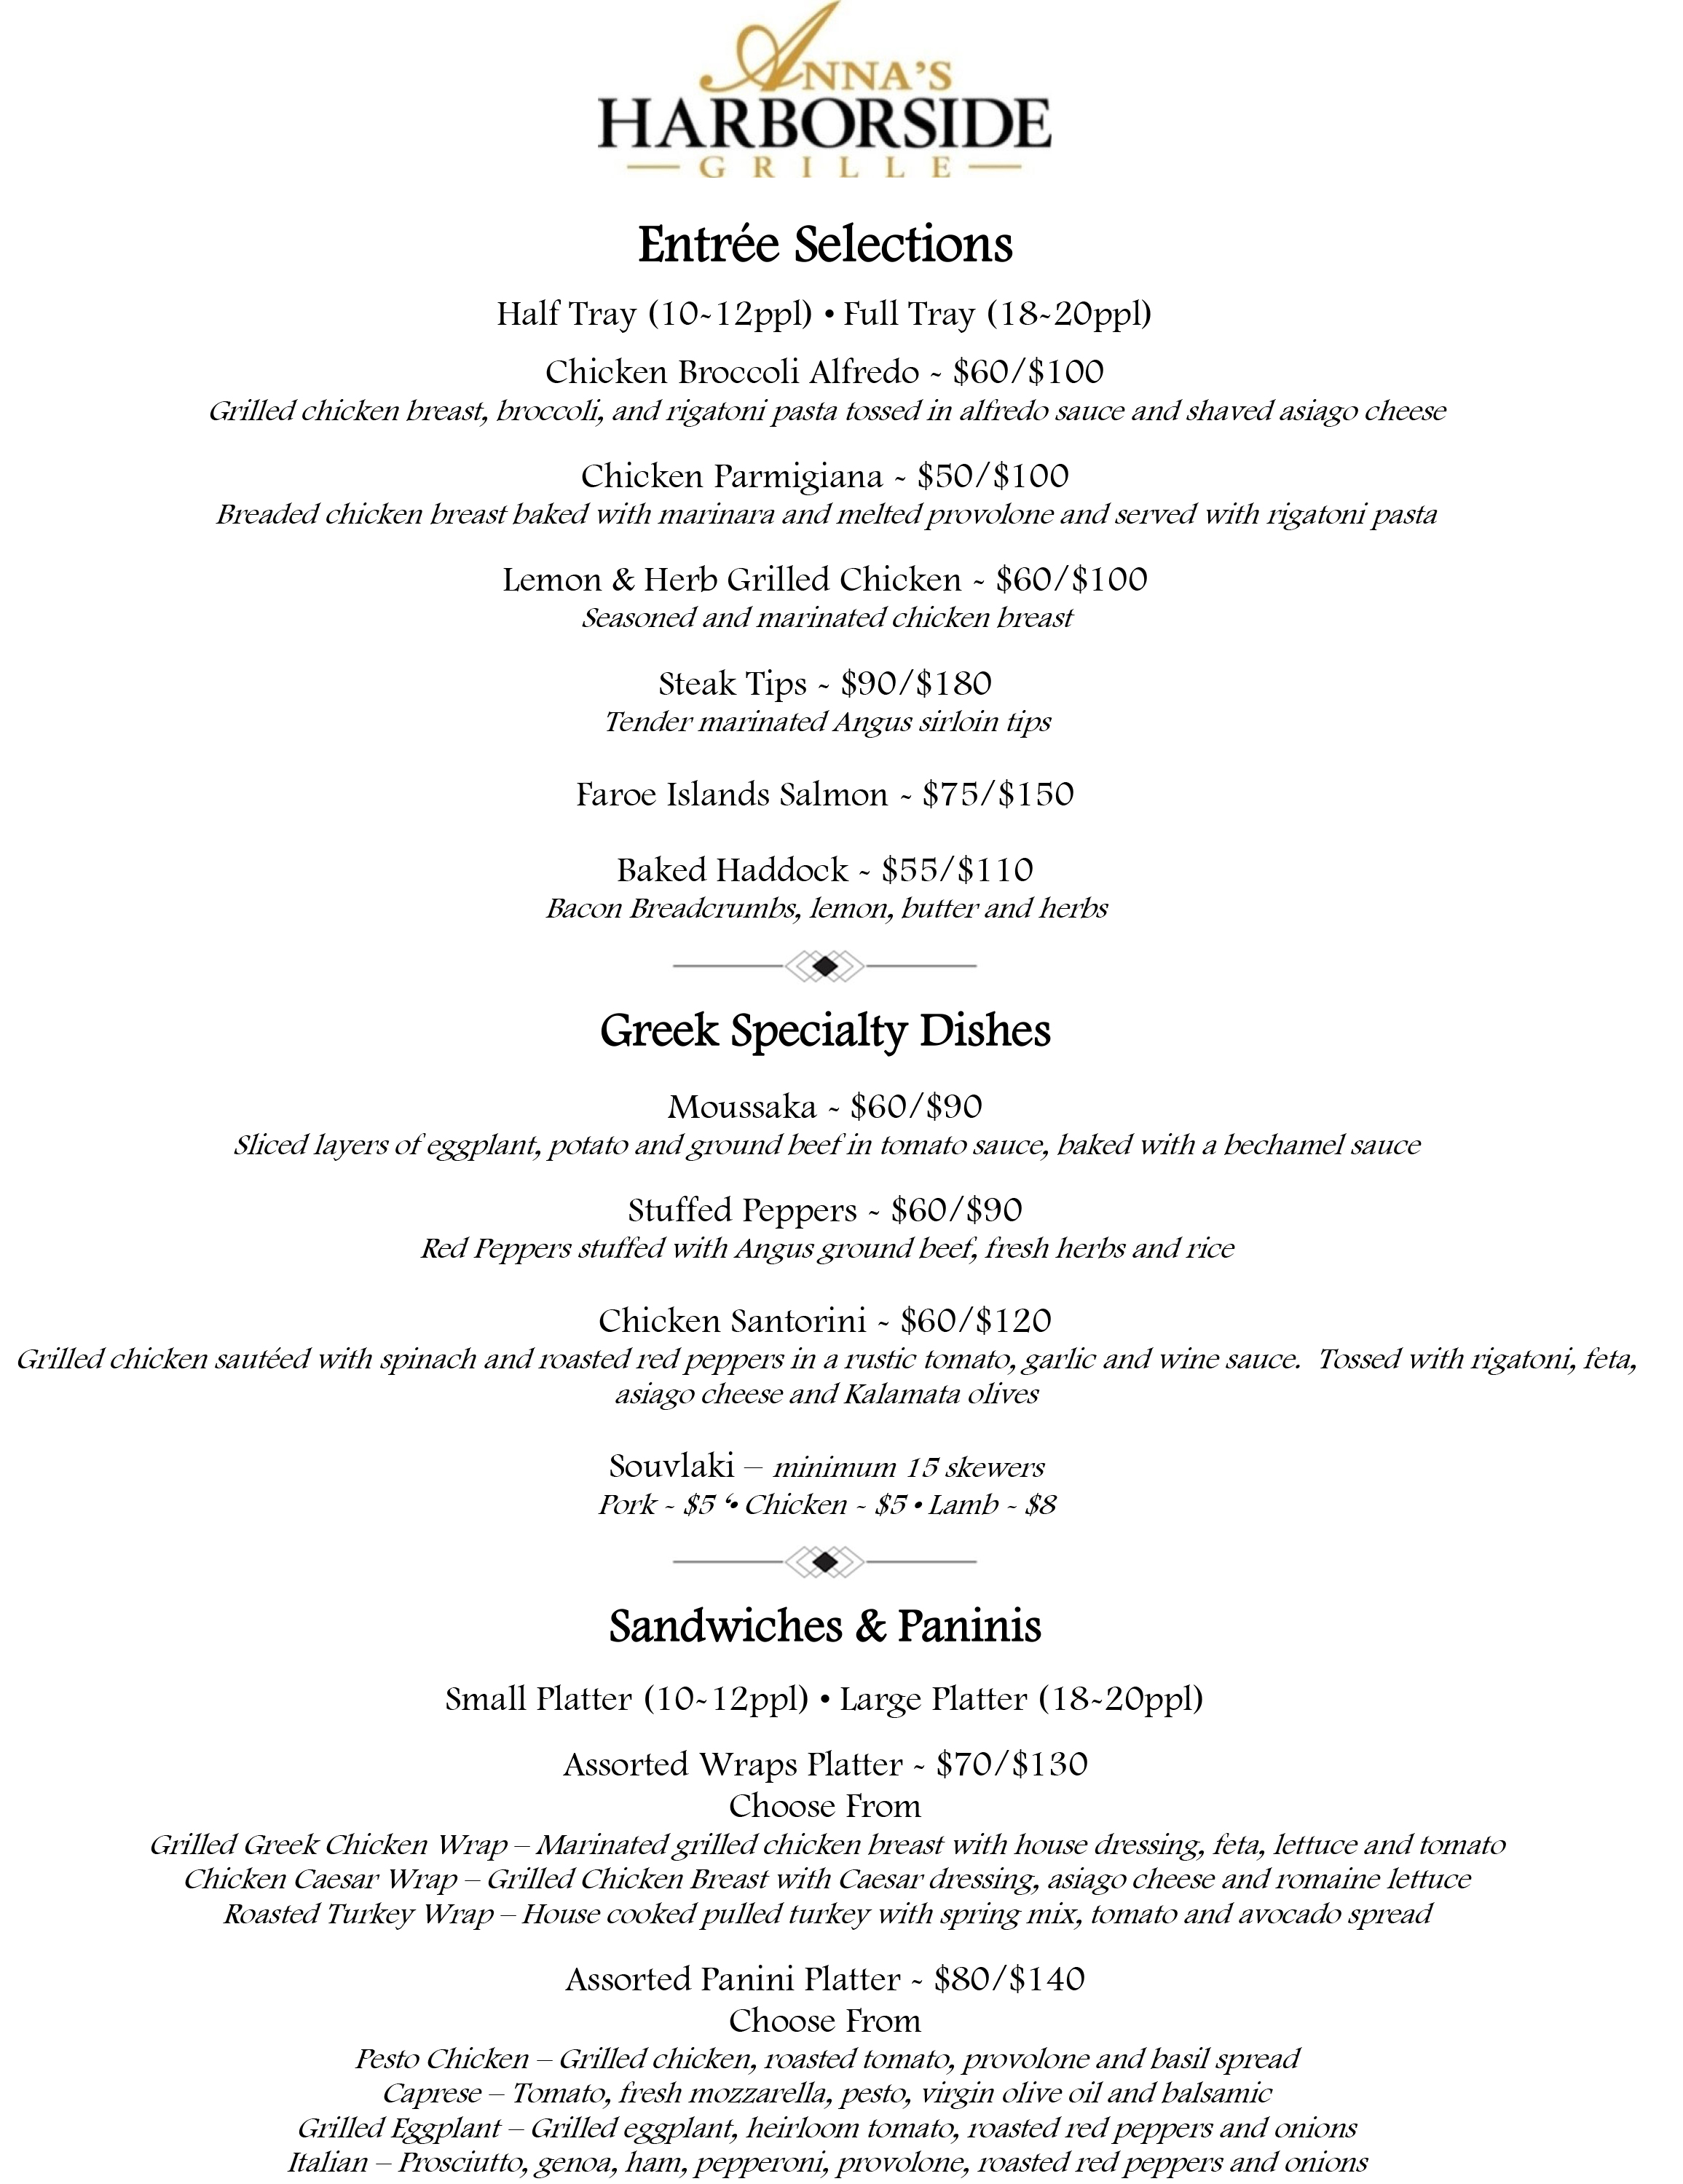 Catering Menu October 2018[6584]-2 - Copy.jpg